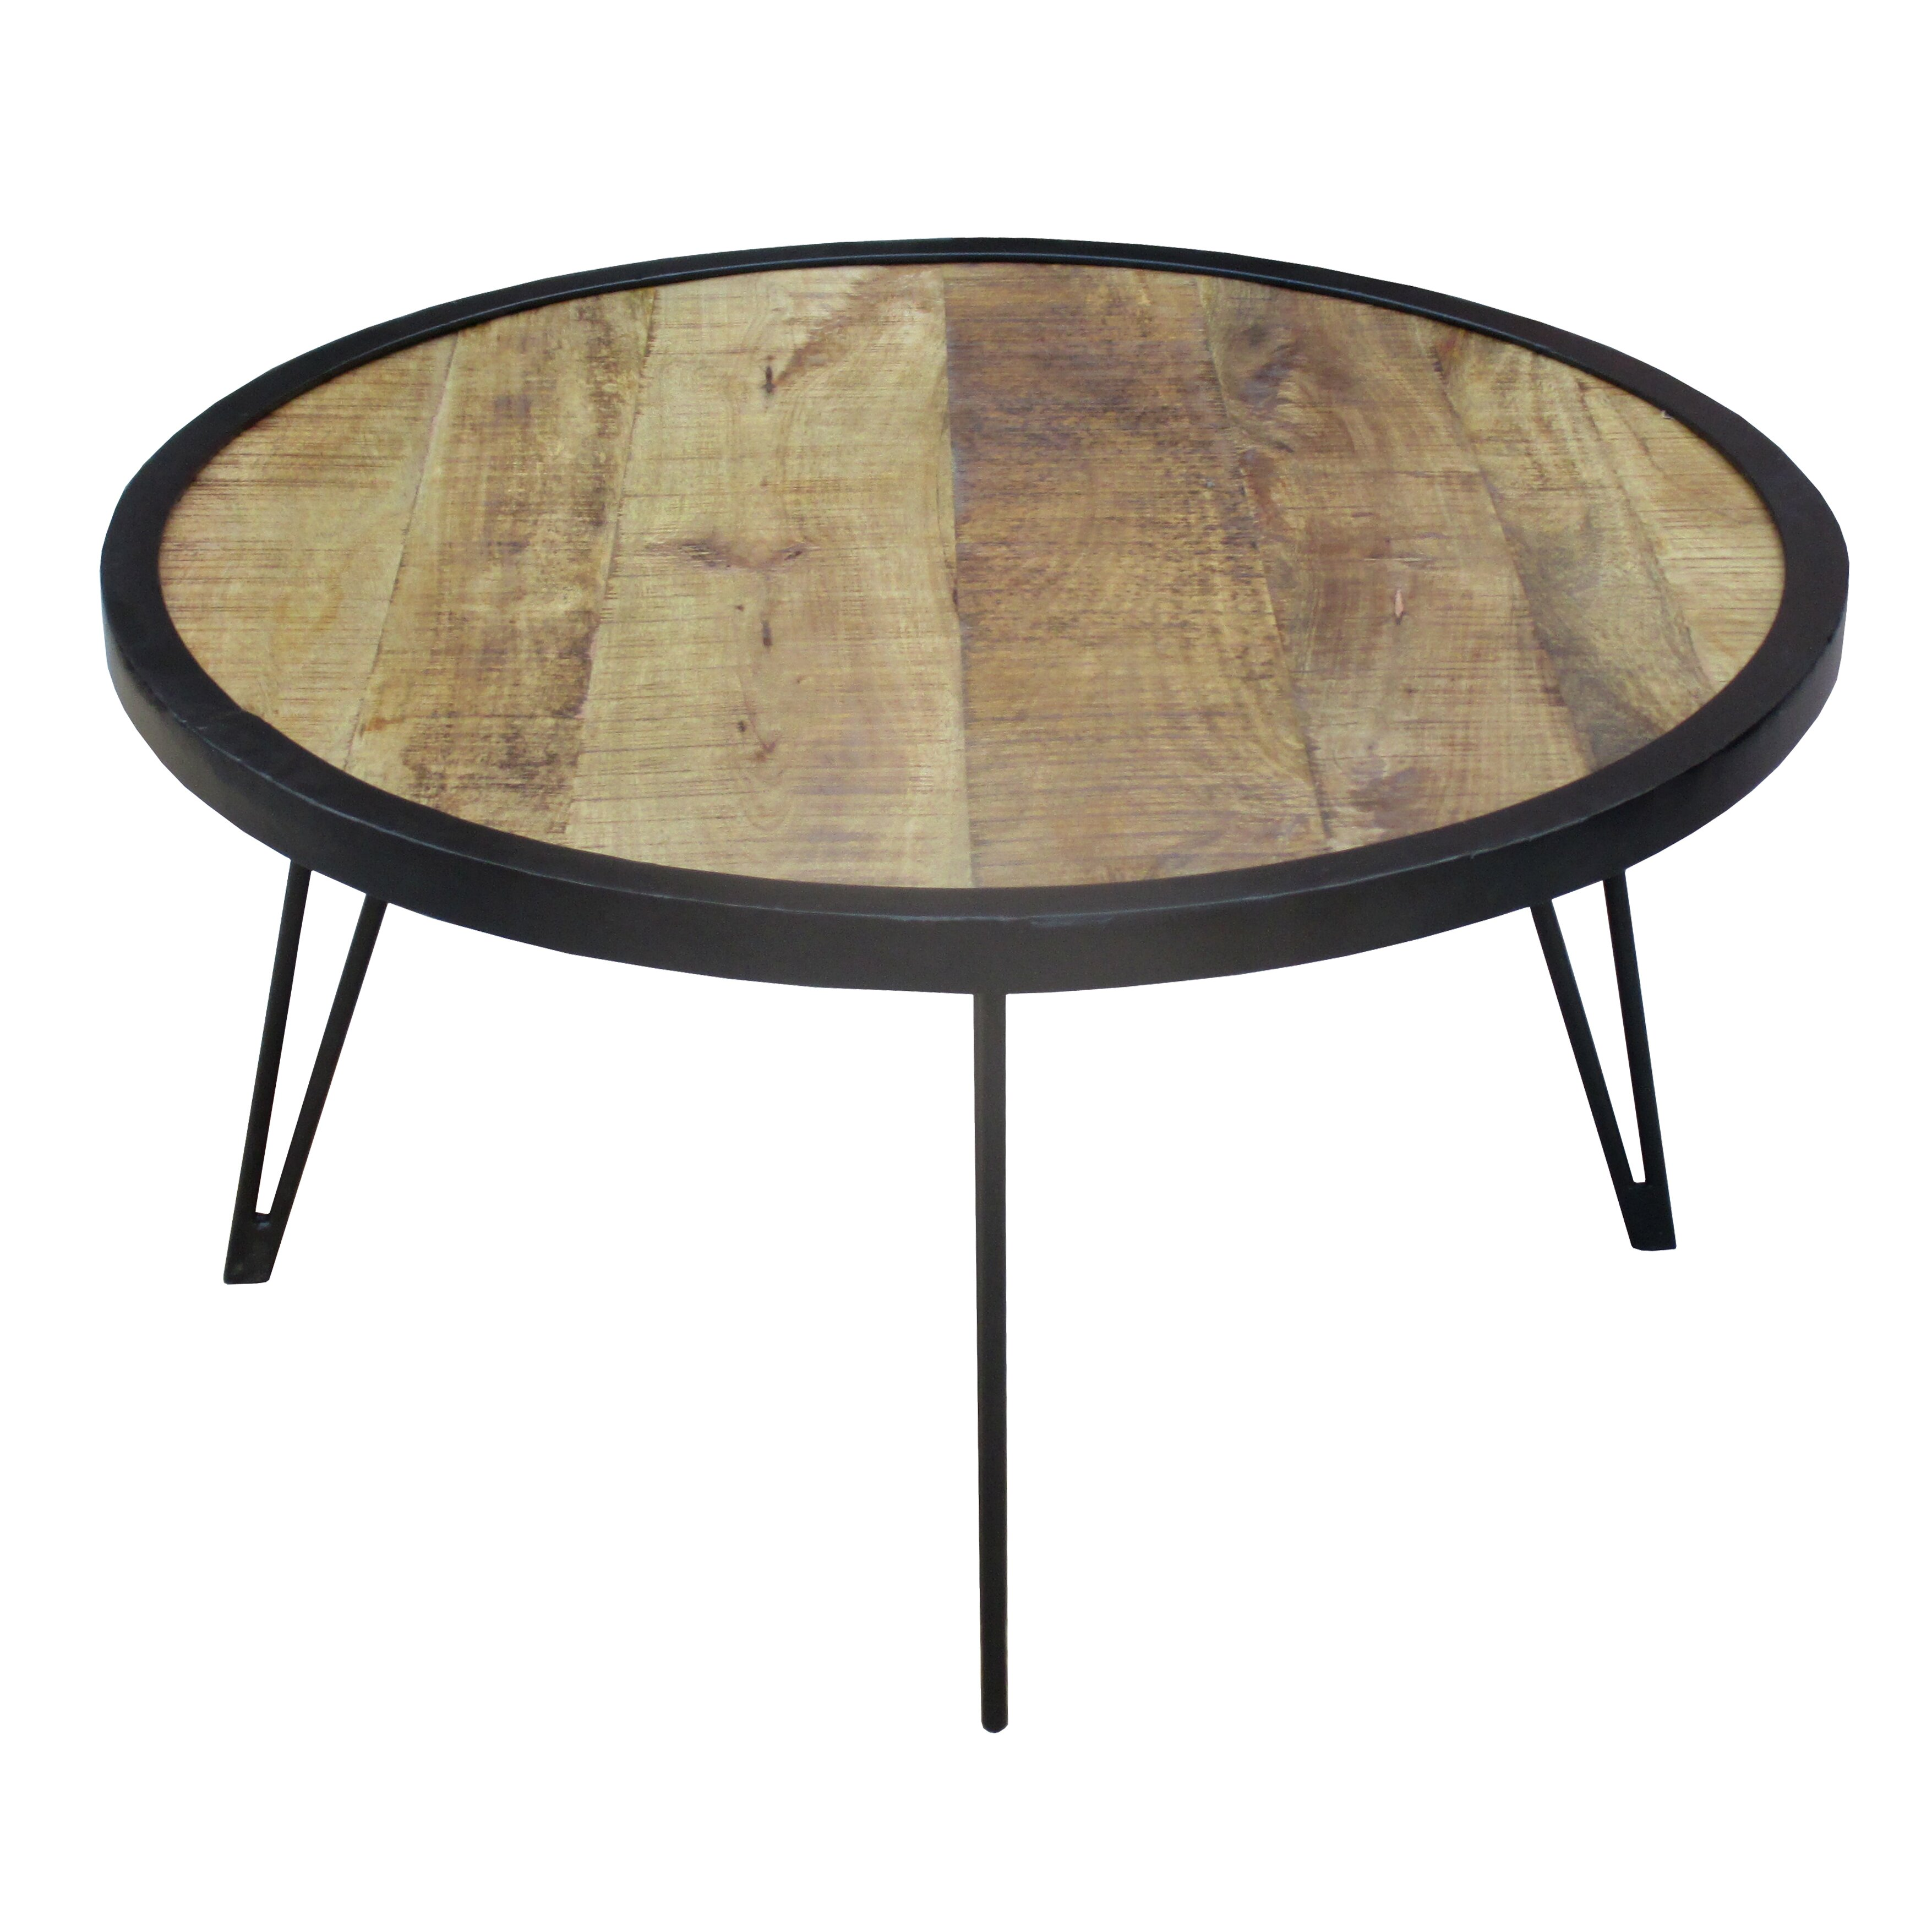 Reclaimed Wood Coffee Table Round: Timbergirl Coffee Table & Reviews